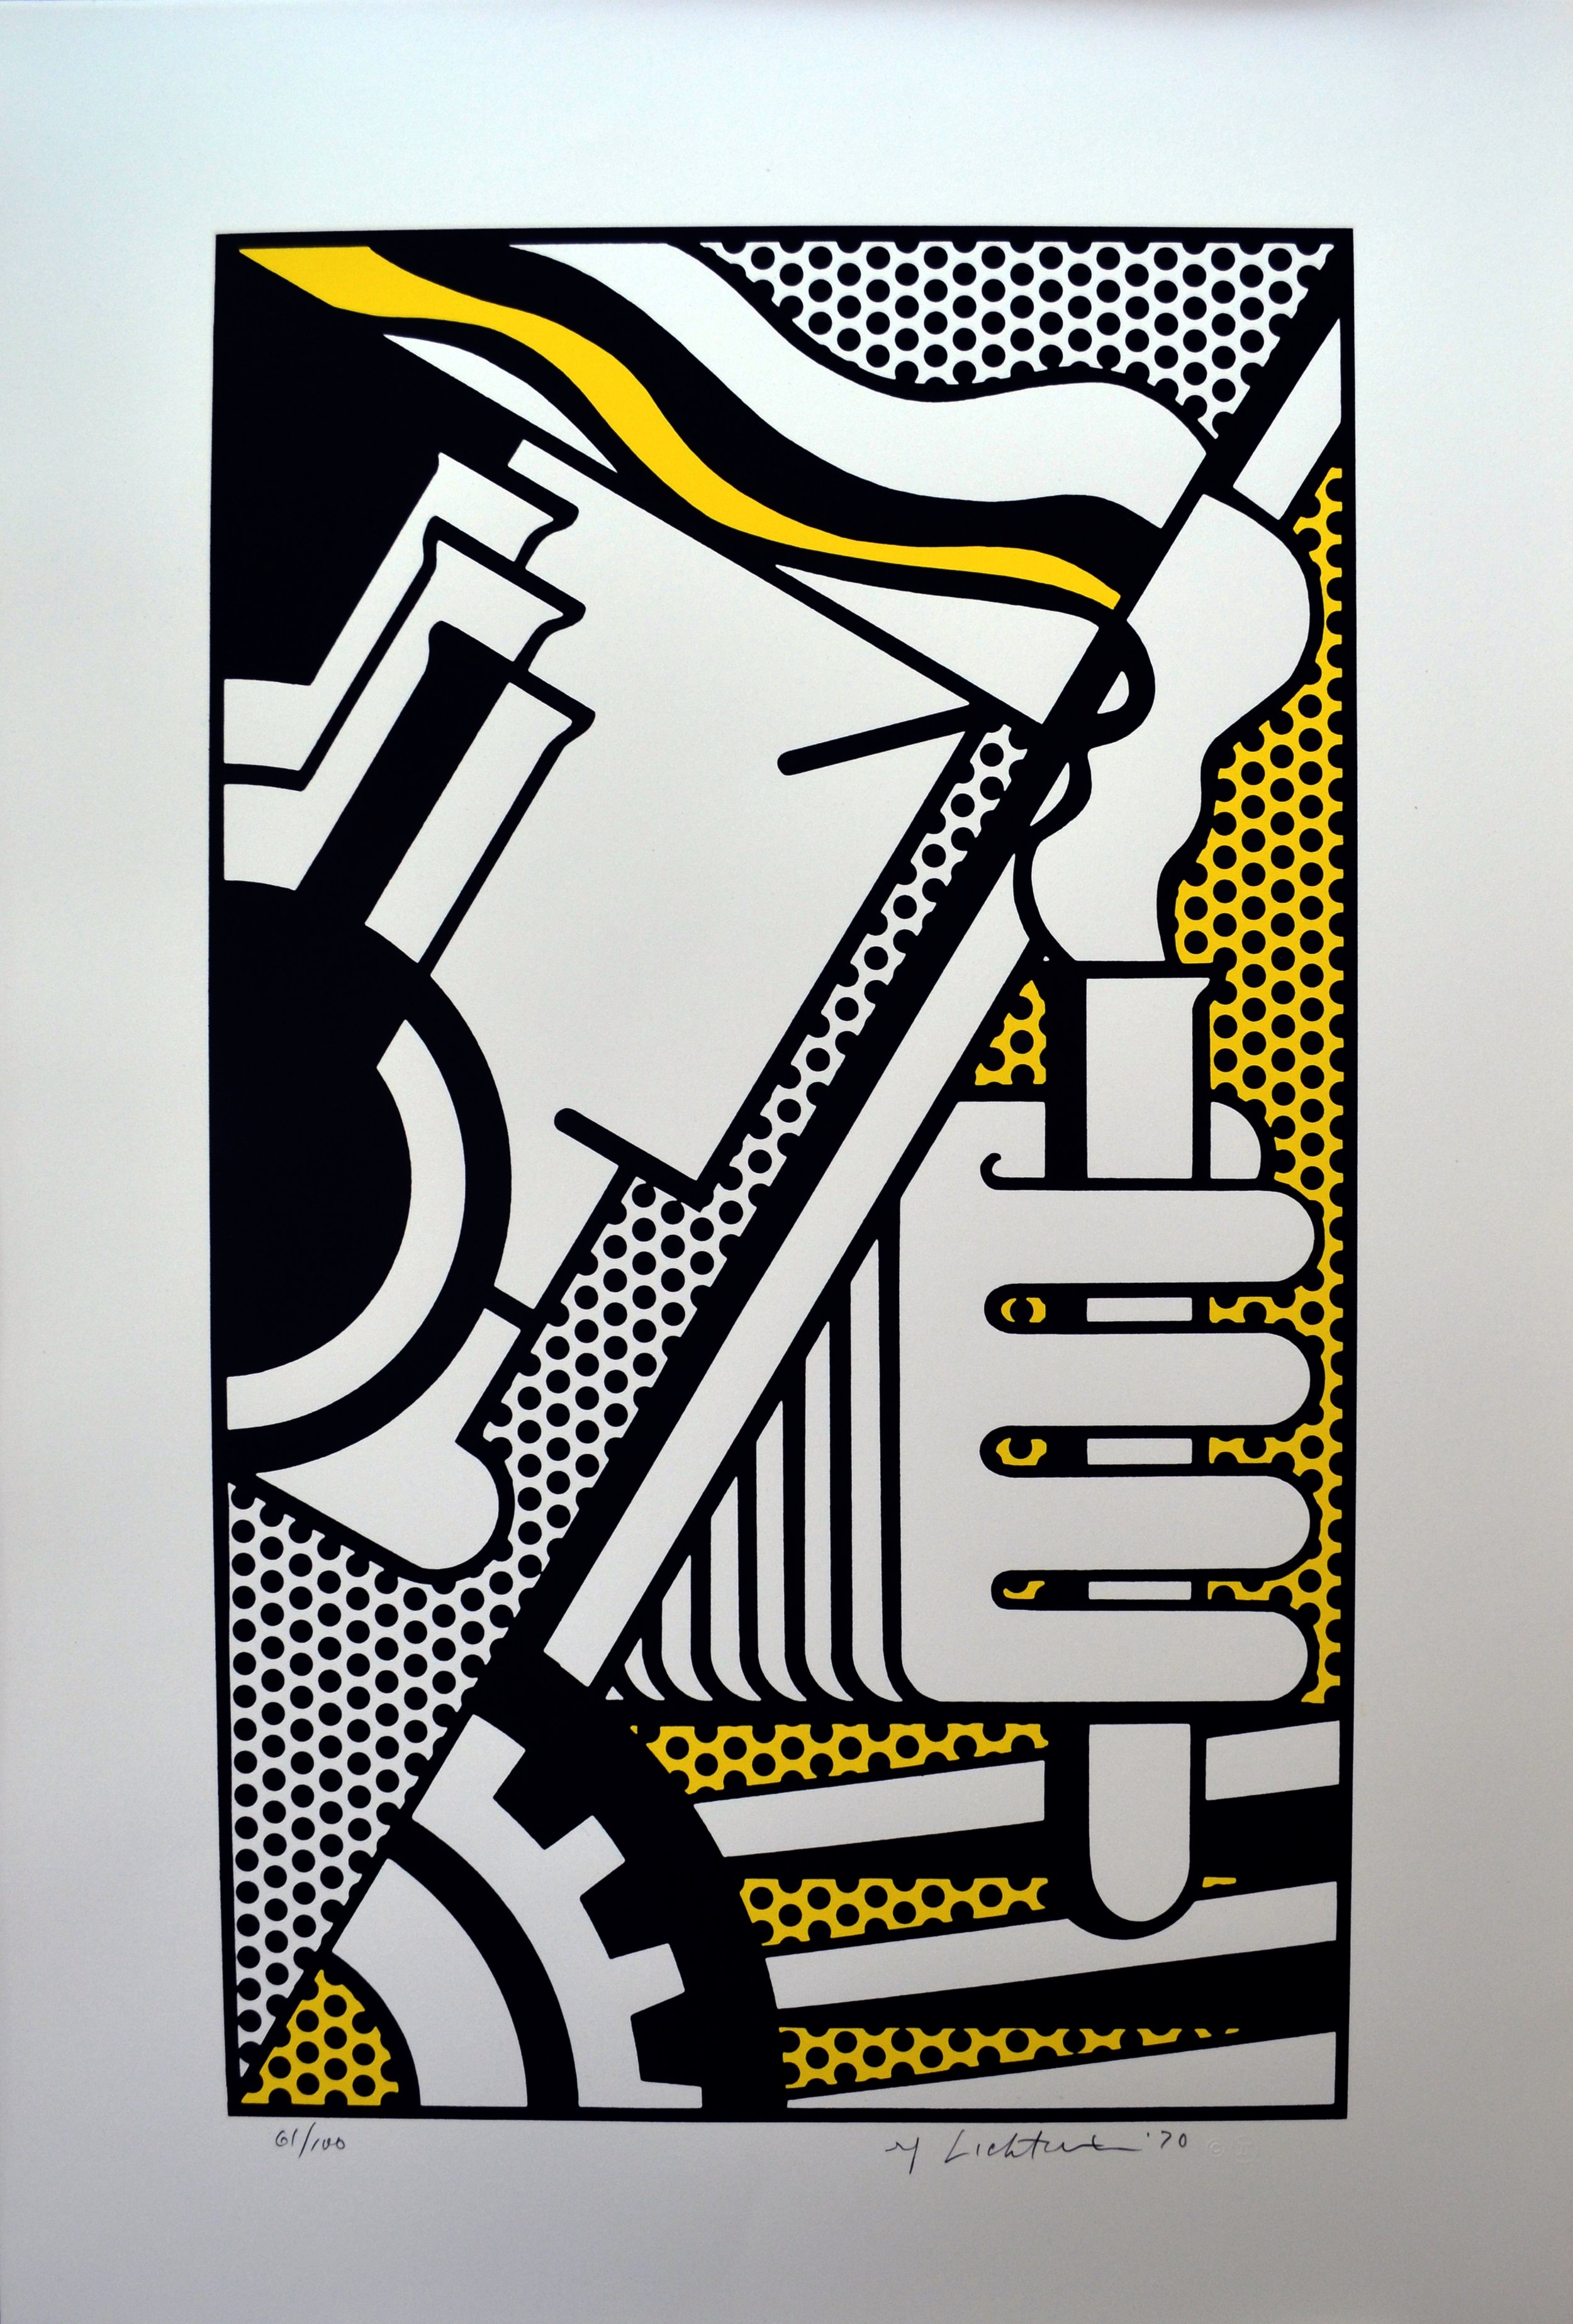 Two-color screenprint titled  Chem 1A  by Roy Lichtenstein